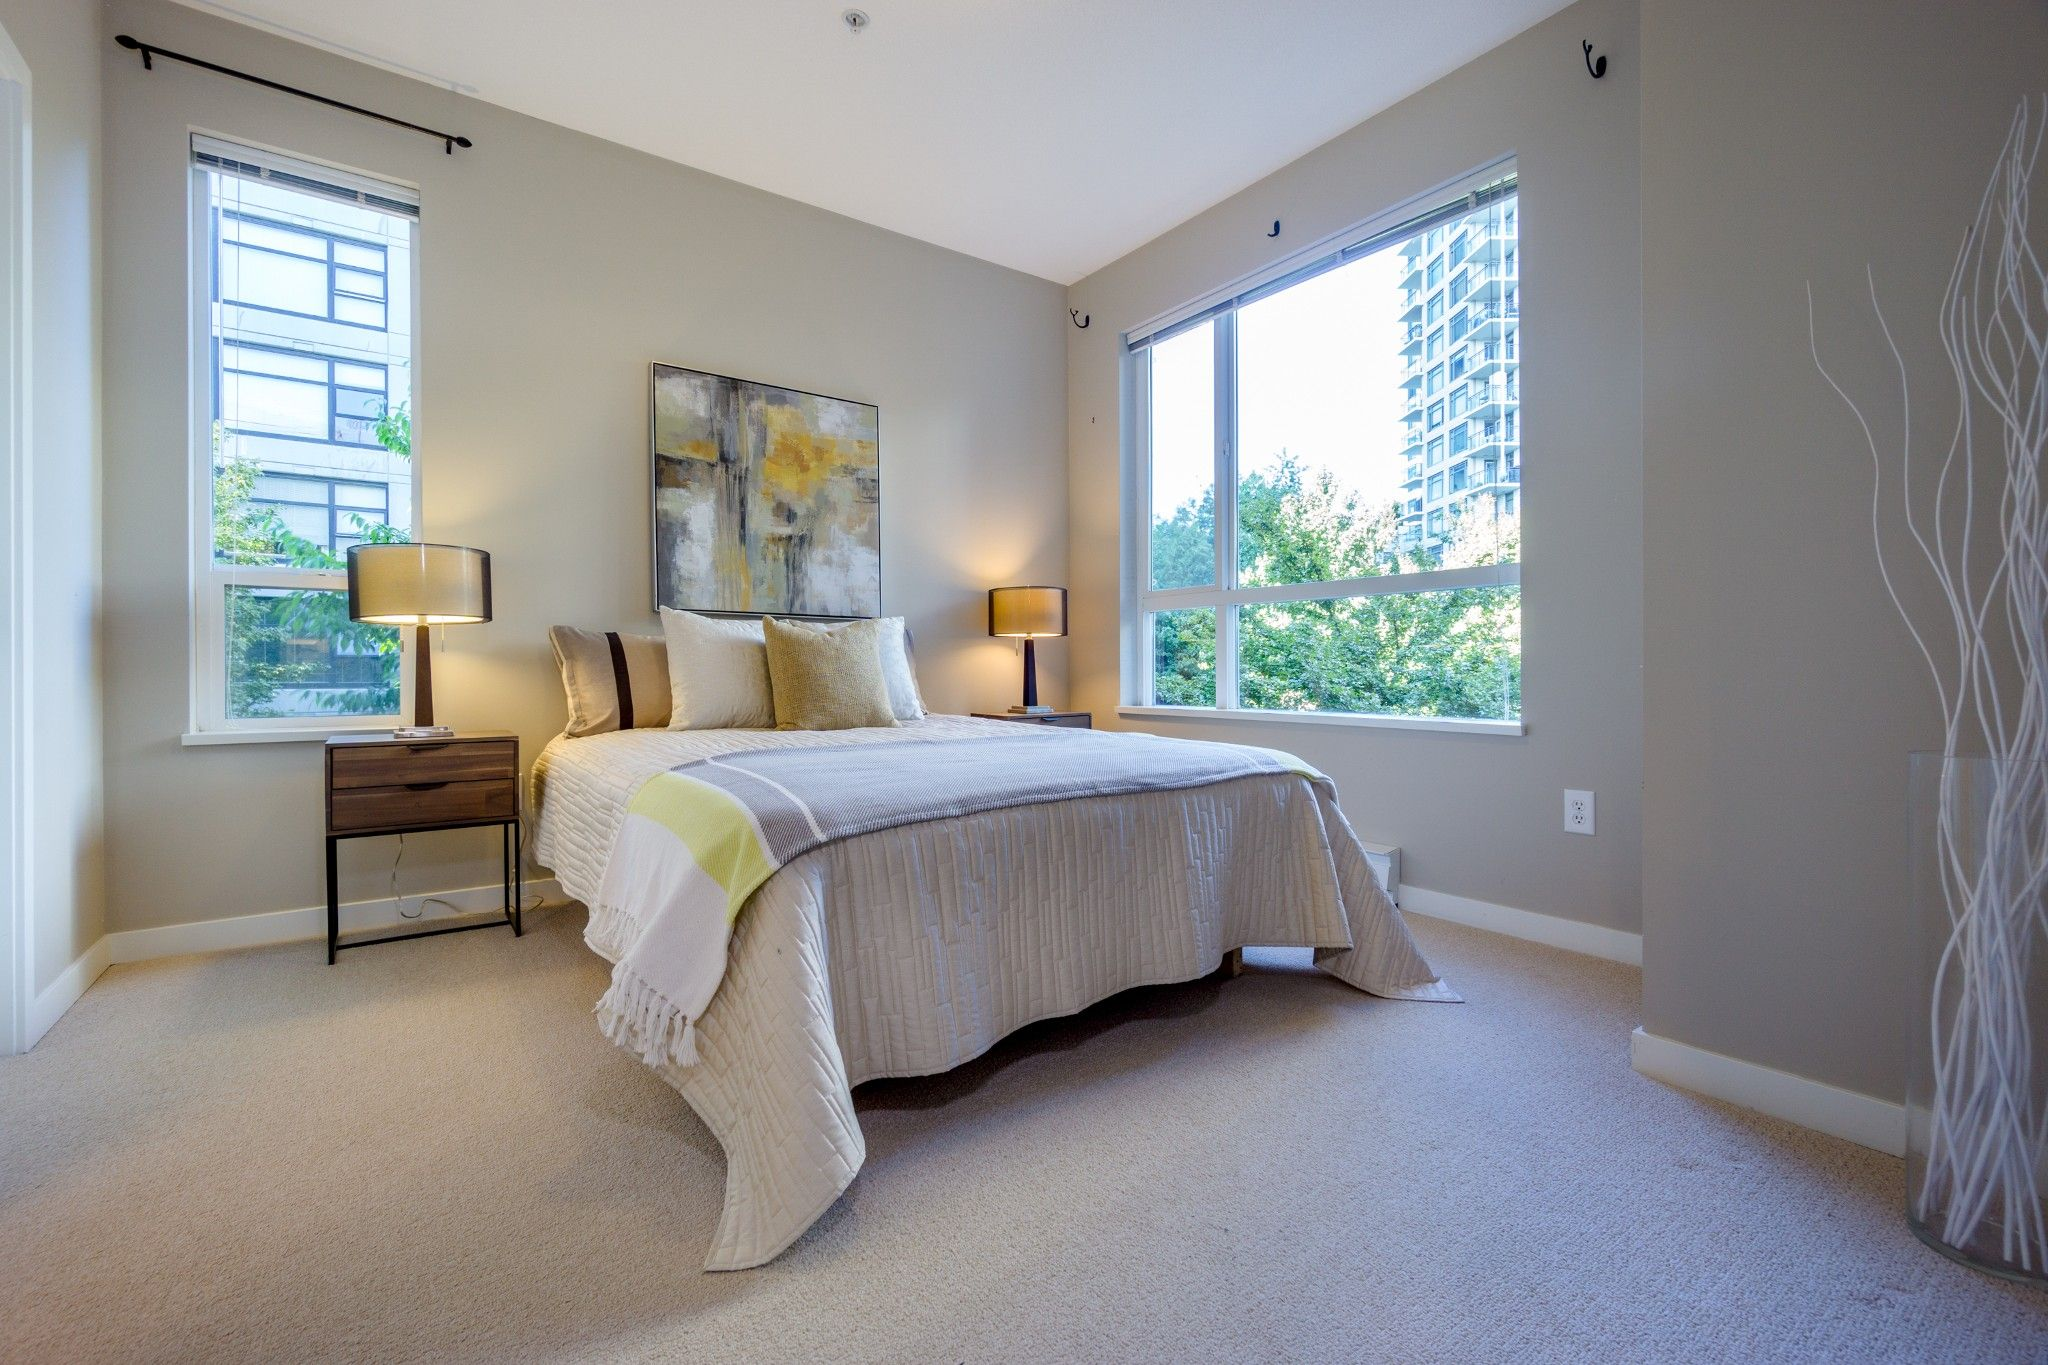 Photo 17: Photos: 208 3551 FOSTER Avenue in Vancouver: Collingwood VE Condo for sale (Vancouver East)  : MLS®# R2291555